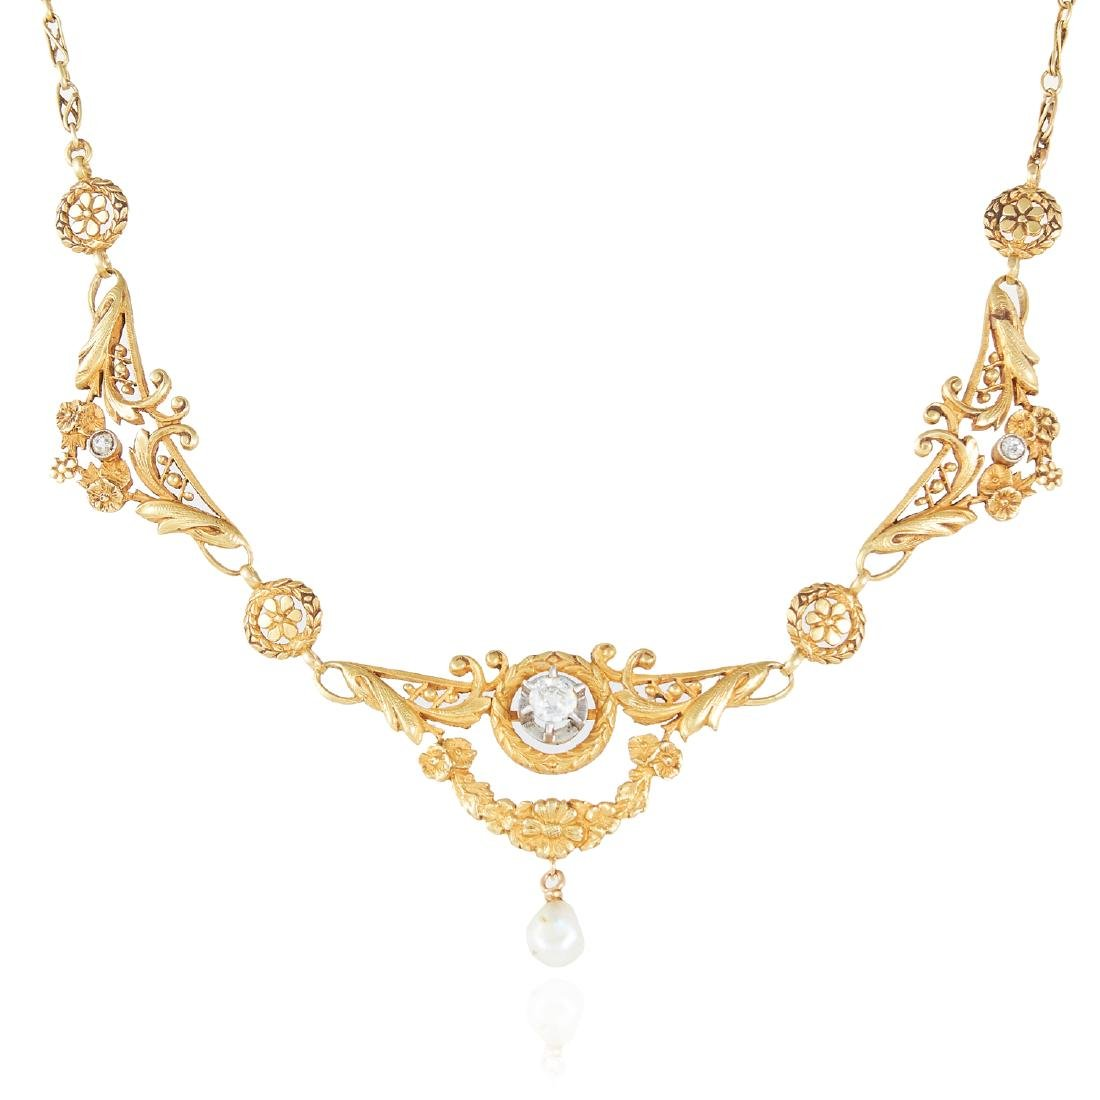 AN ART NOUVEAU PEARL AND DIAMOND NECKLACE in 18ct